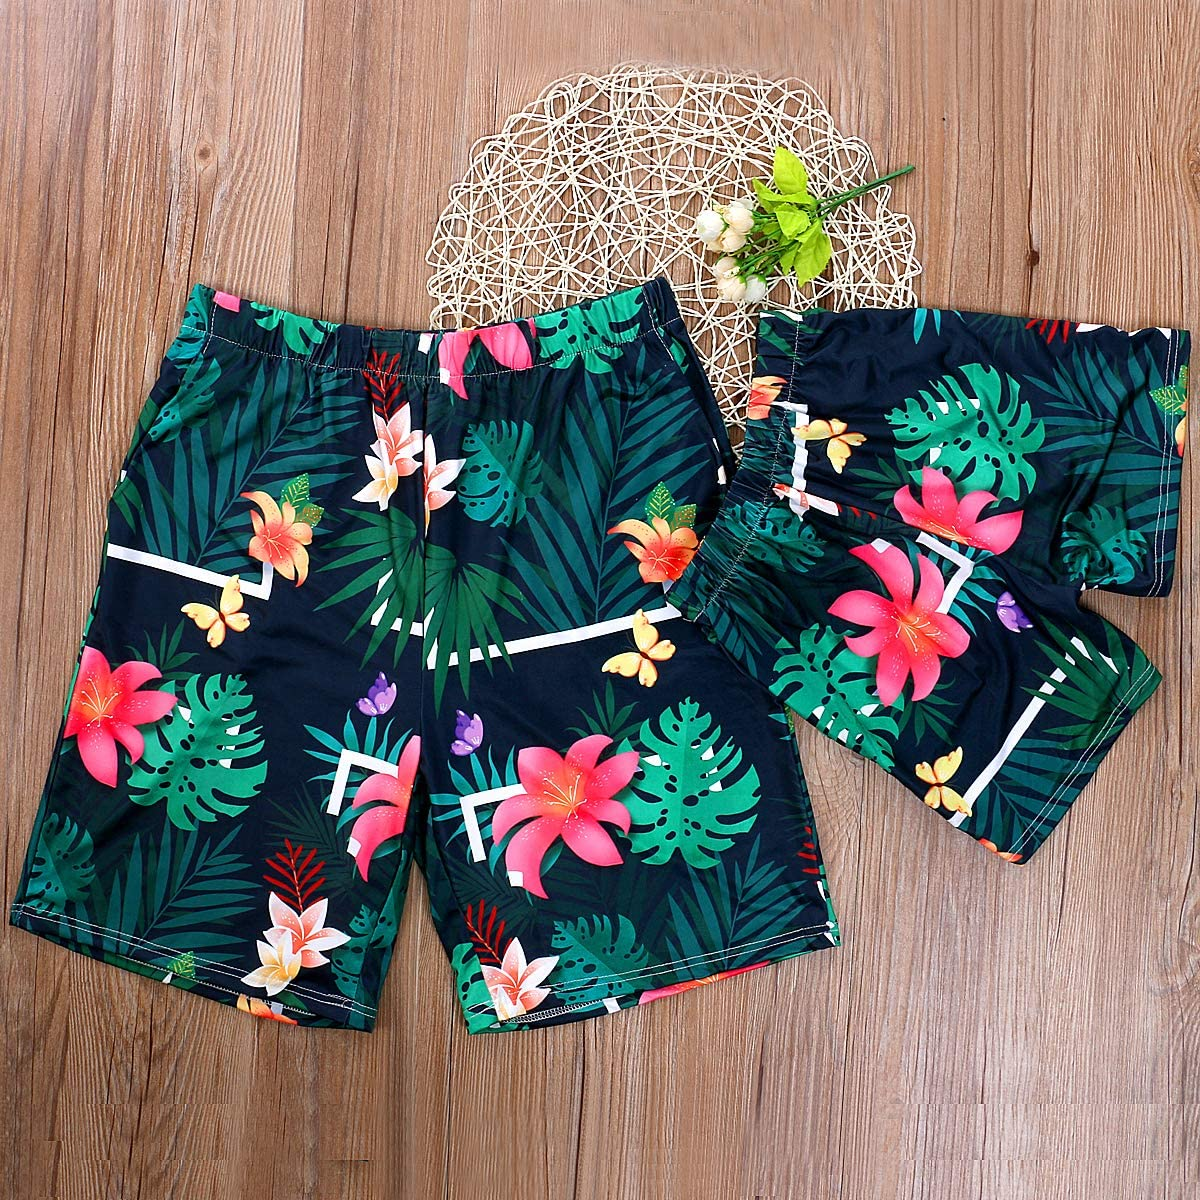 Mommy and Me Family Matching Swimsuit,Floral Print One Piece Swimwear Father and Son Swim Trunks Bathing Suits